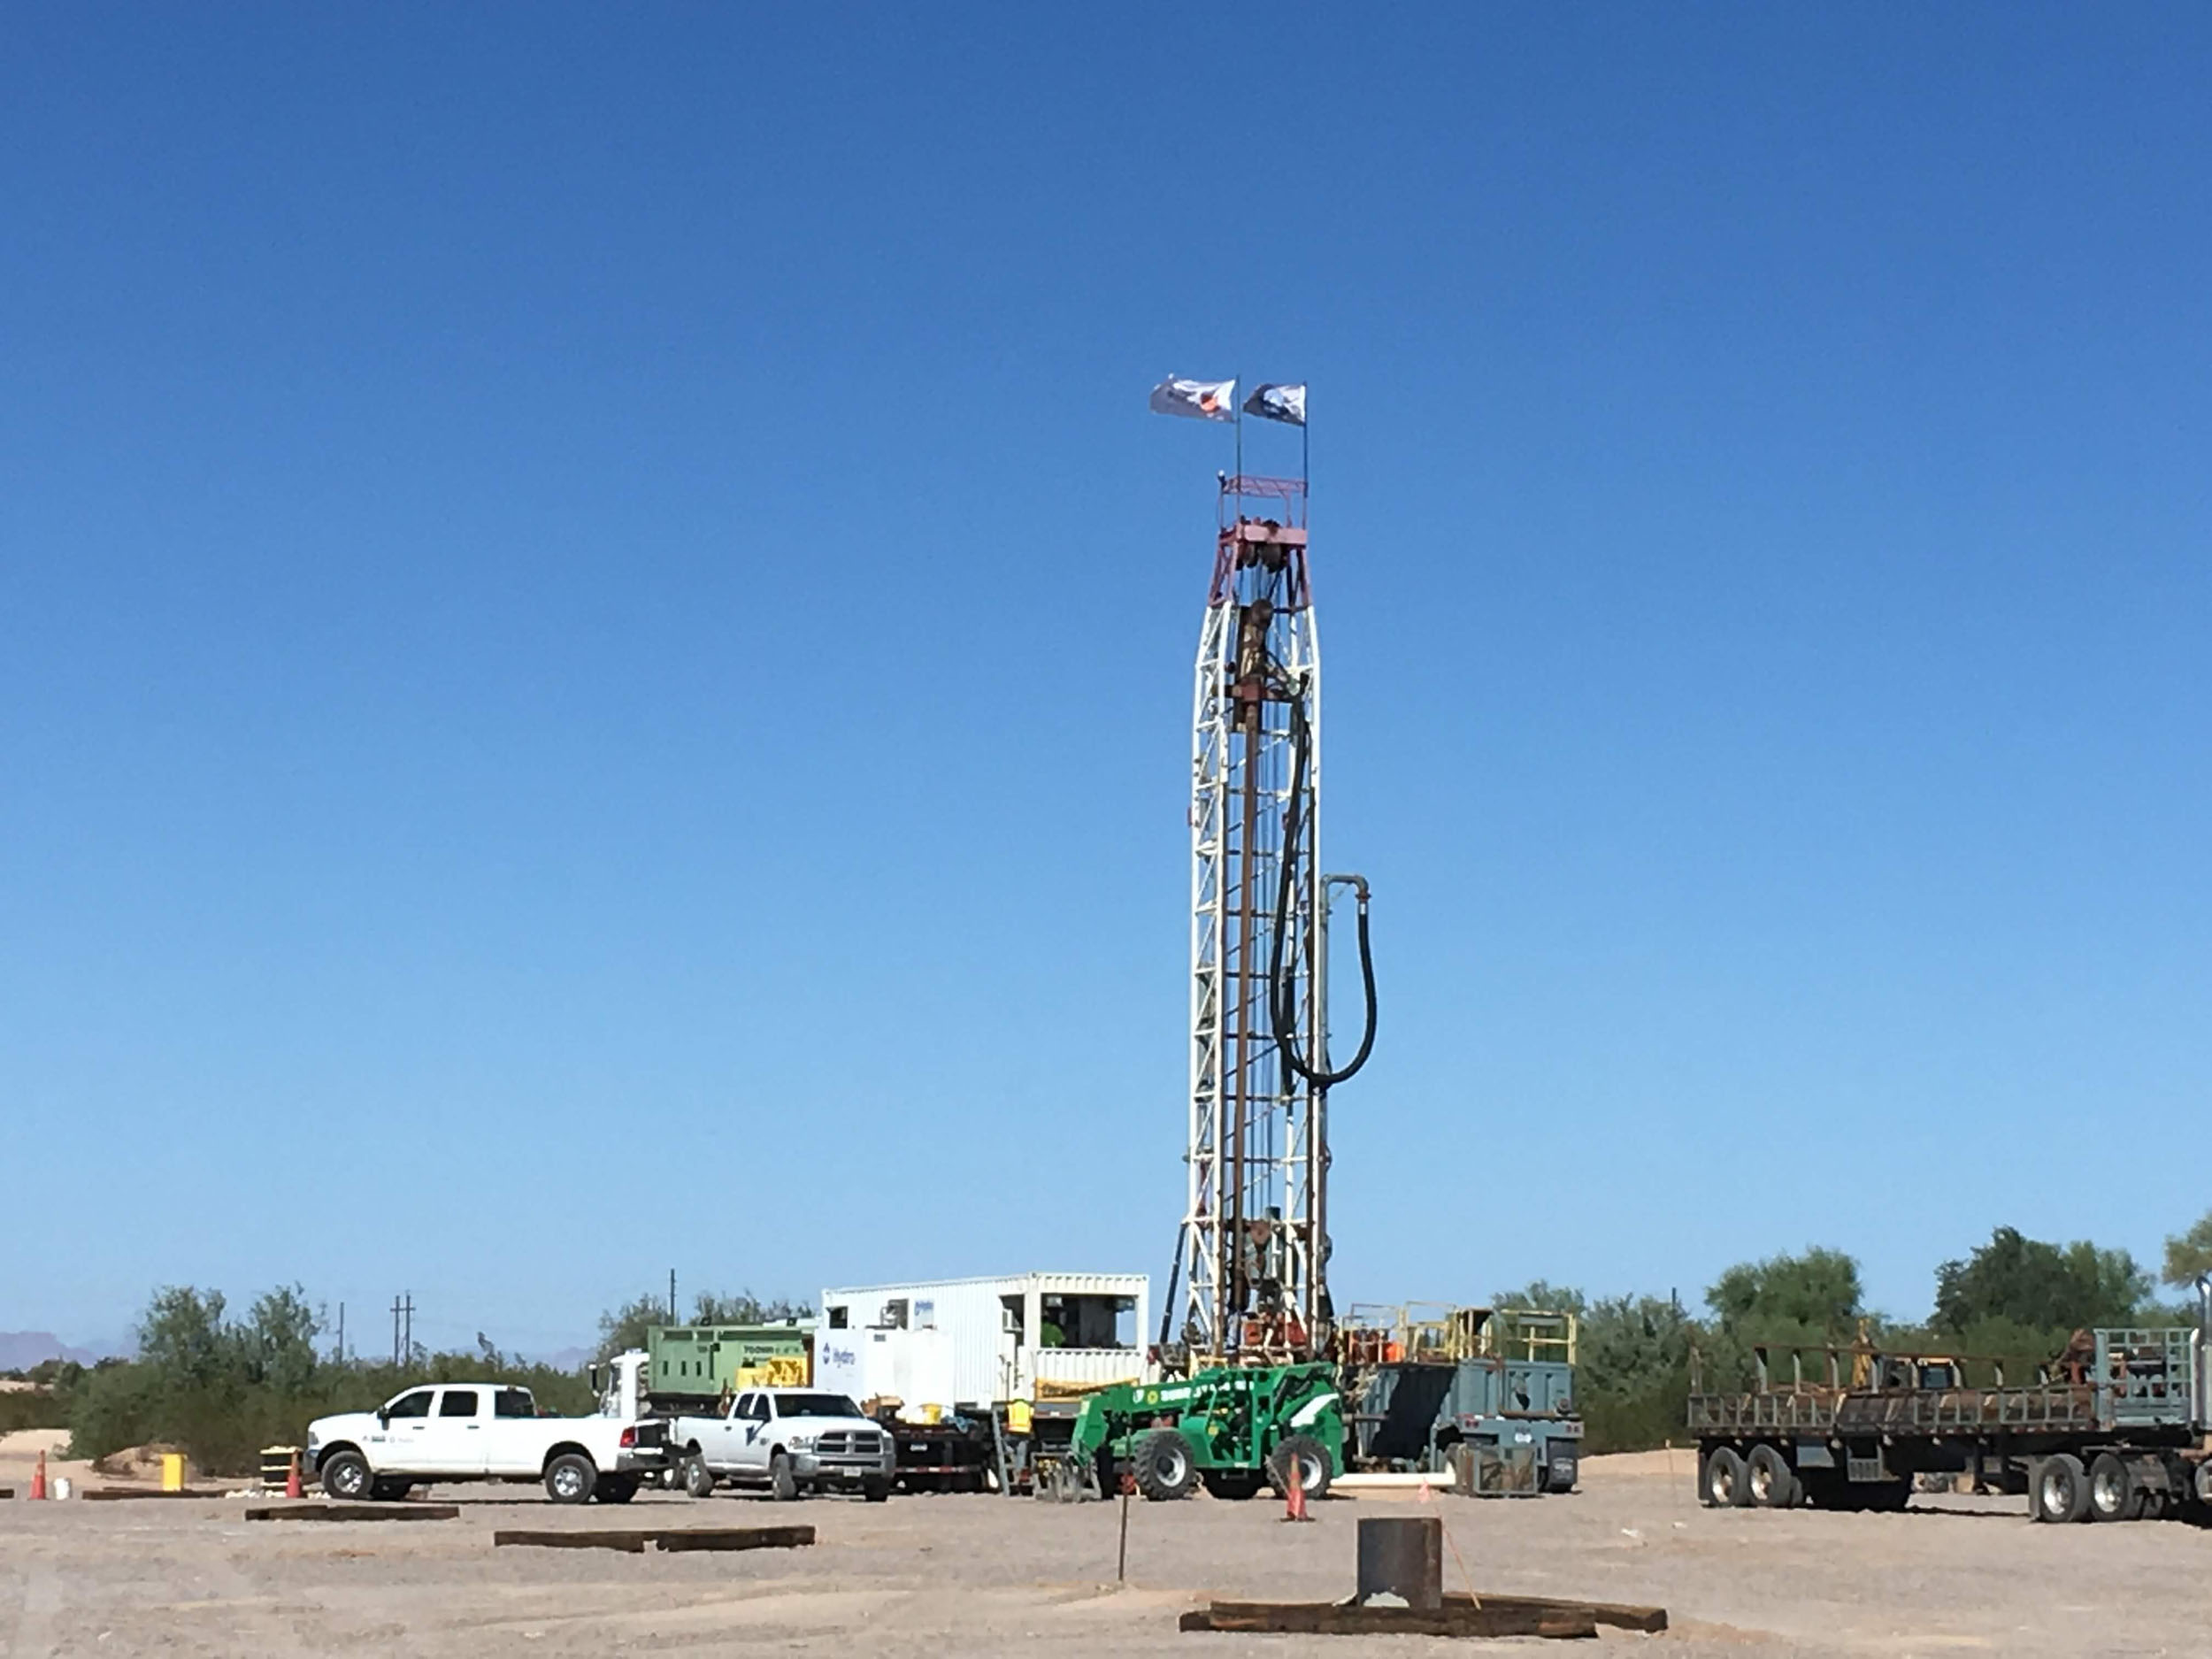 Five drill rigs are now working 24/7 on the Florence Copper property to install injection/recovery wells, monitoring wells, and other needed wells for the PTF